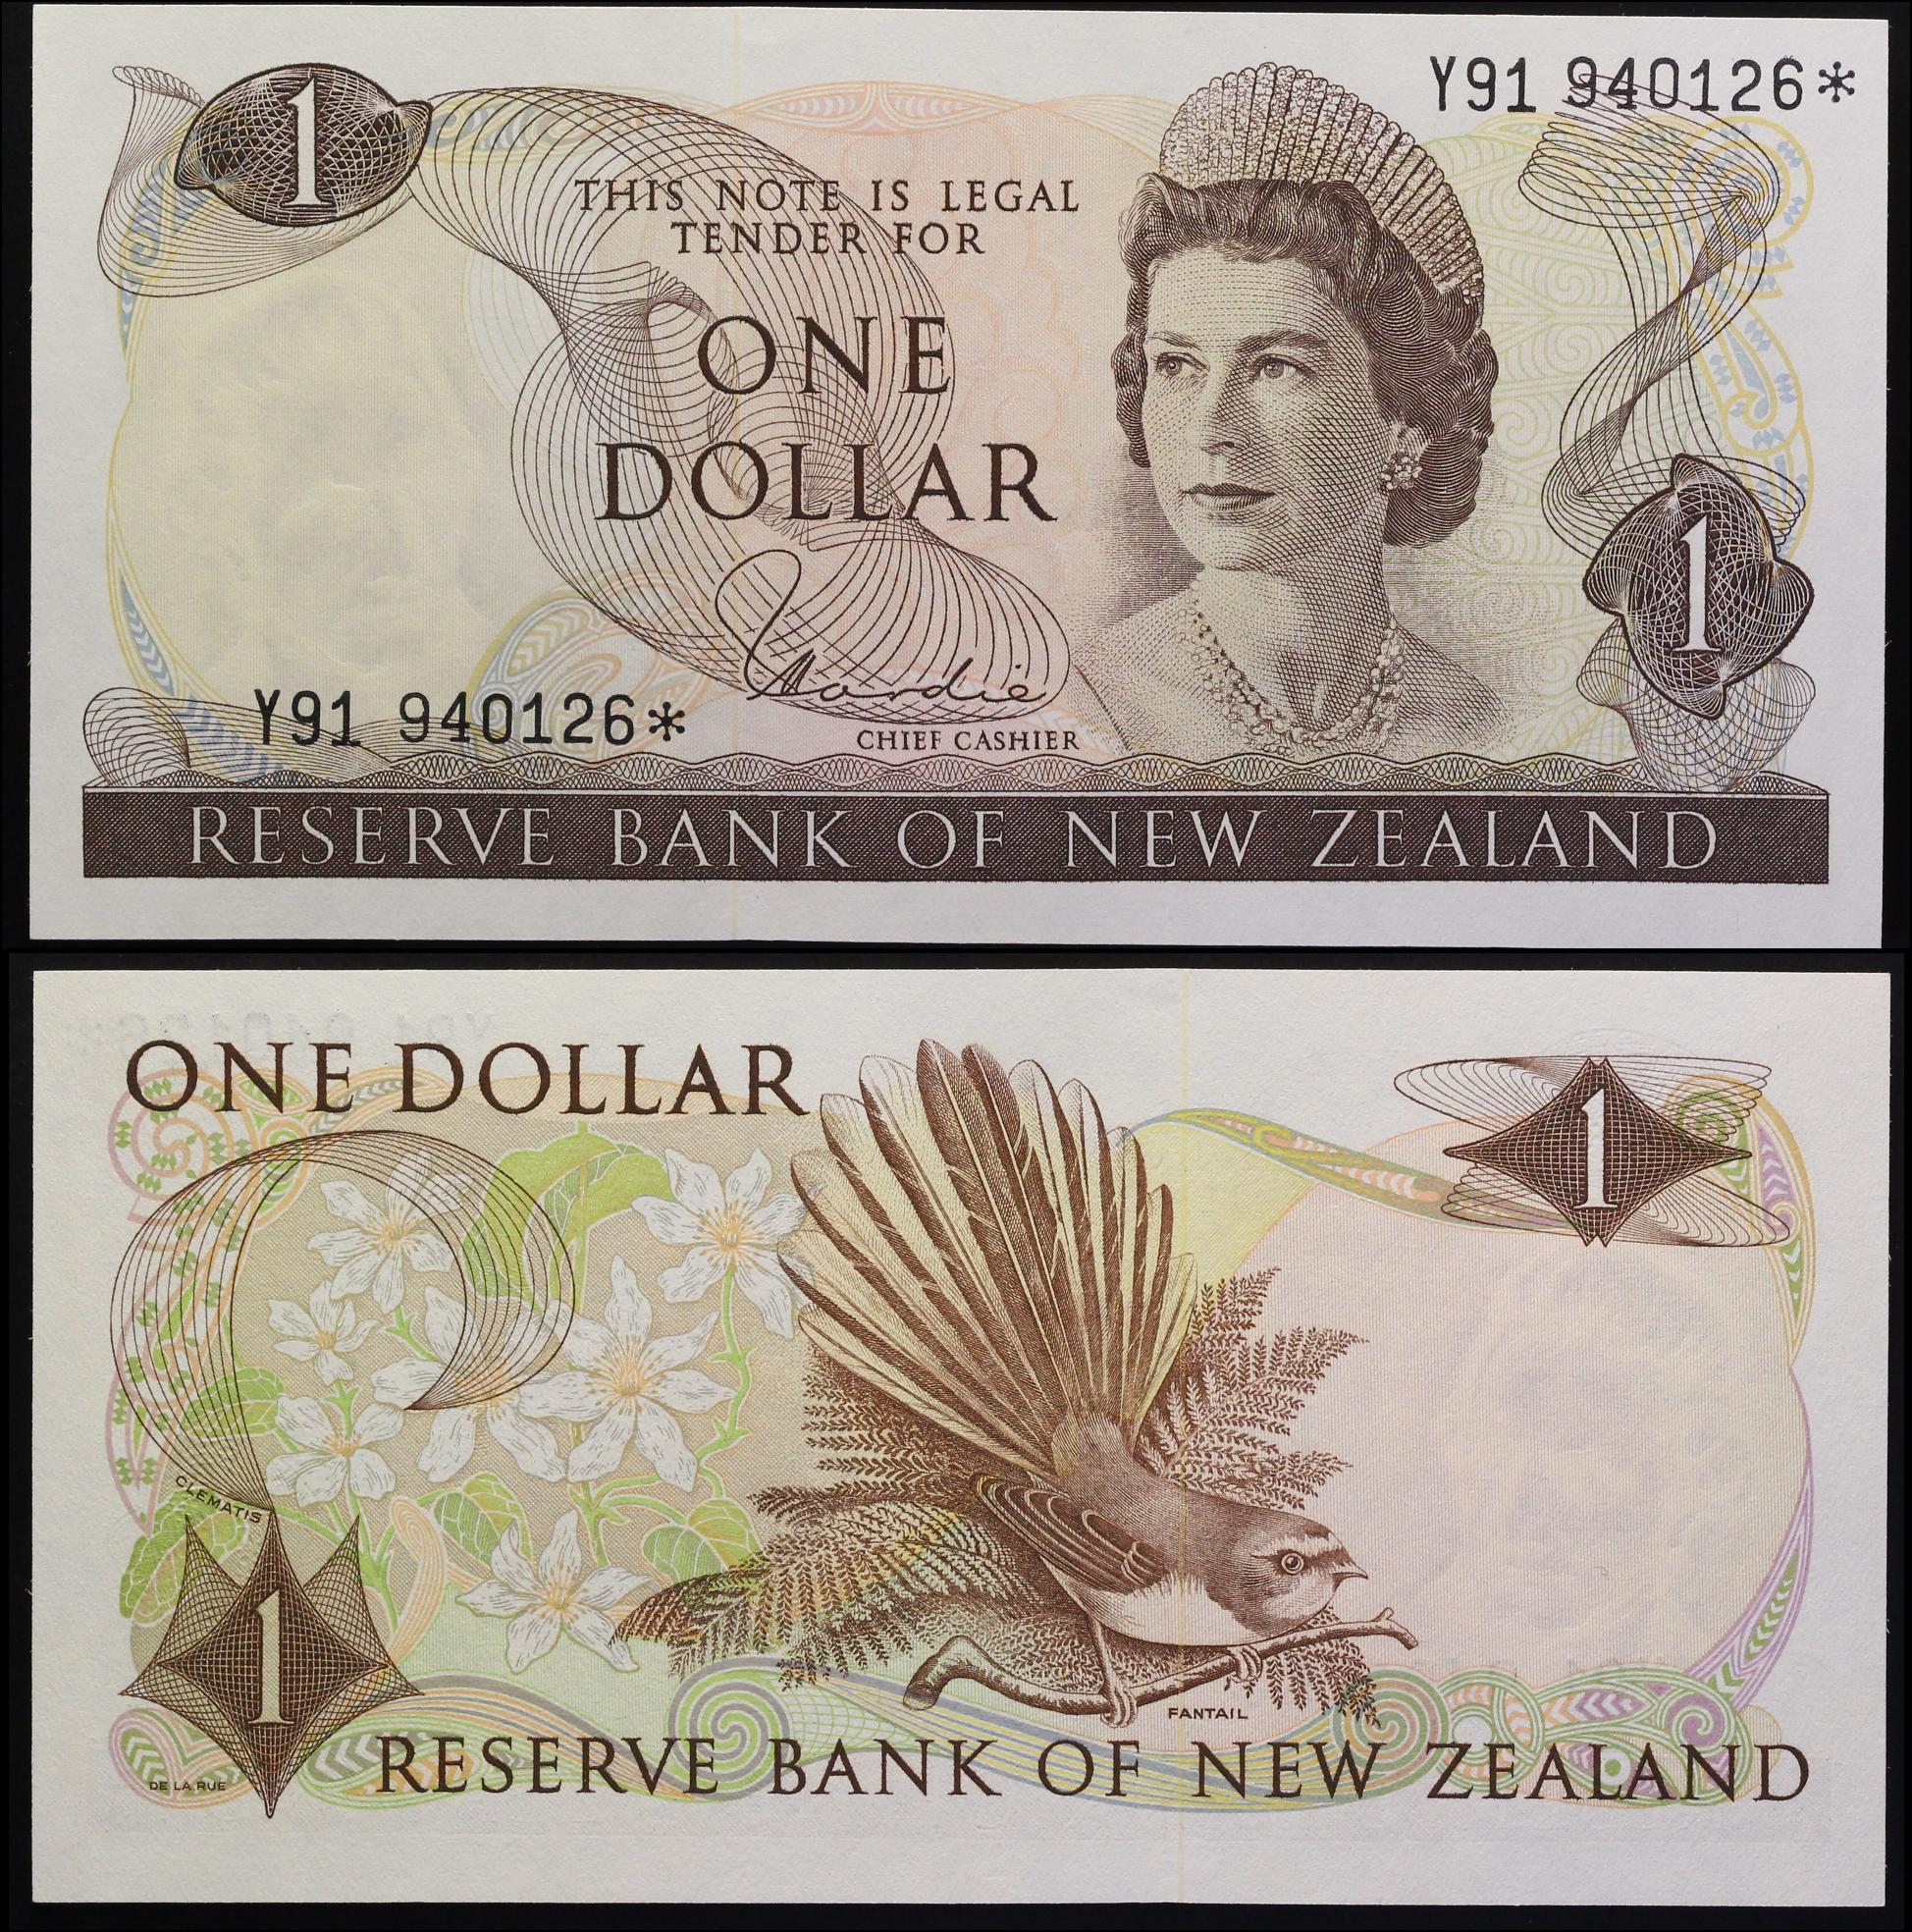 NEW ZEALAND 1 DOLLAR REPLACEMENT P 163 d HARDIE UNC